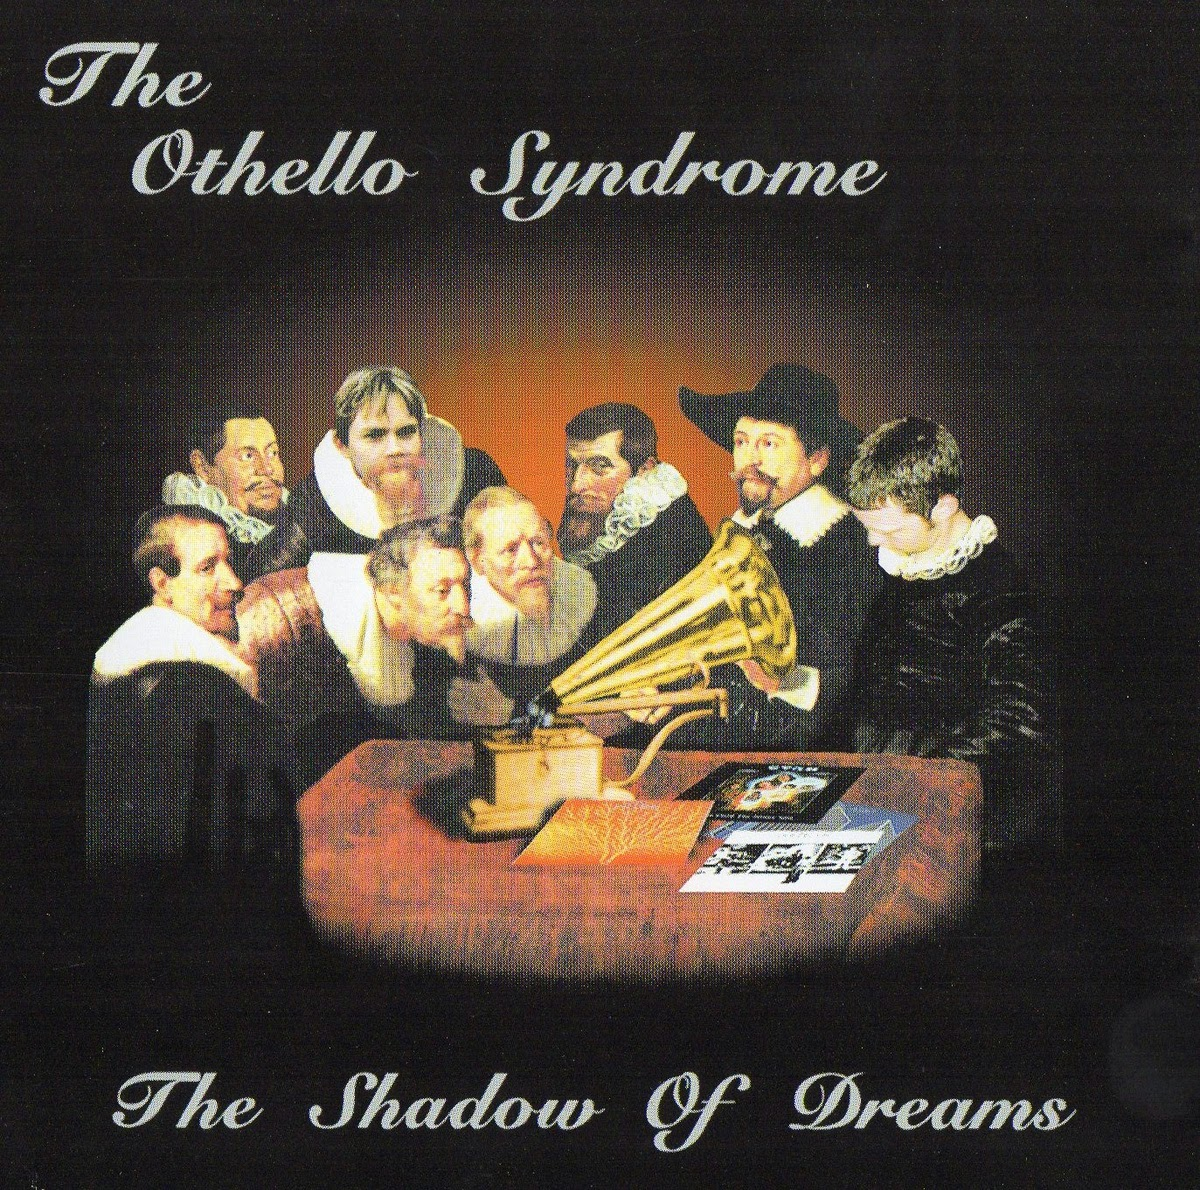 The Othello Syndrome - The Shadow Of Dreams (1999)